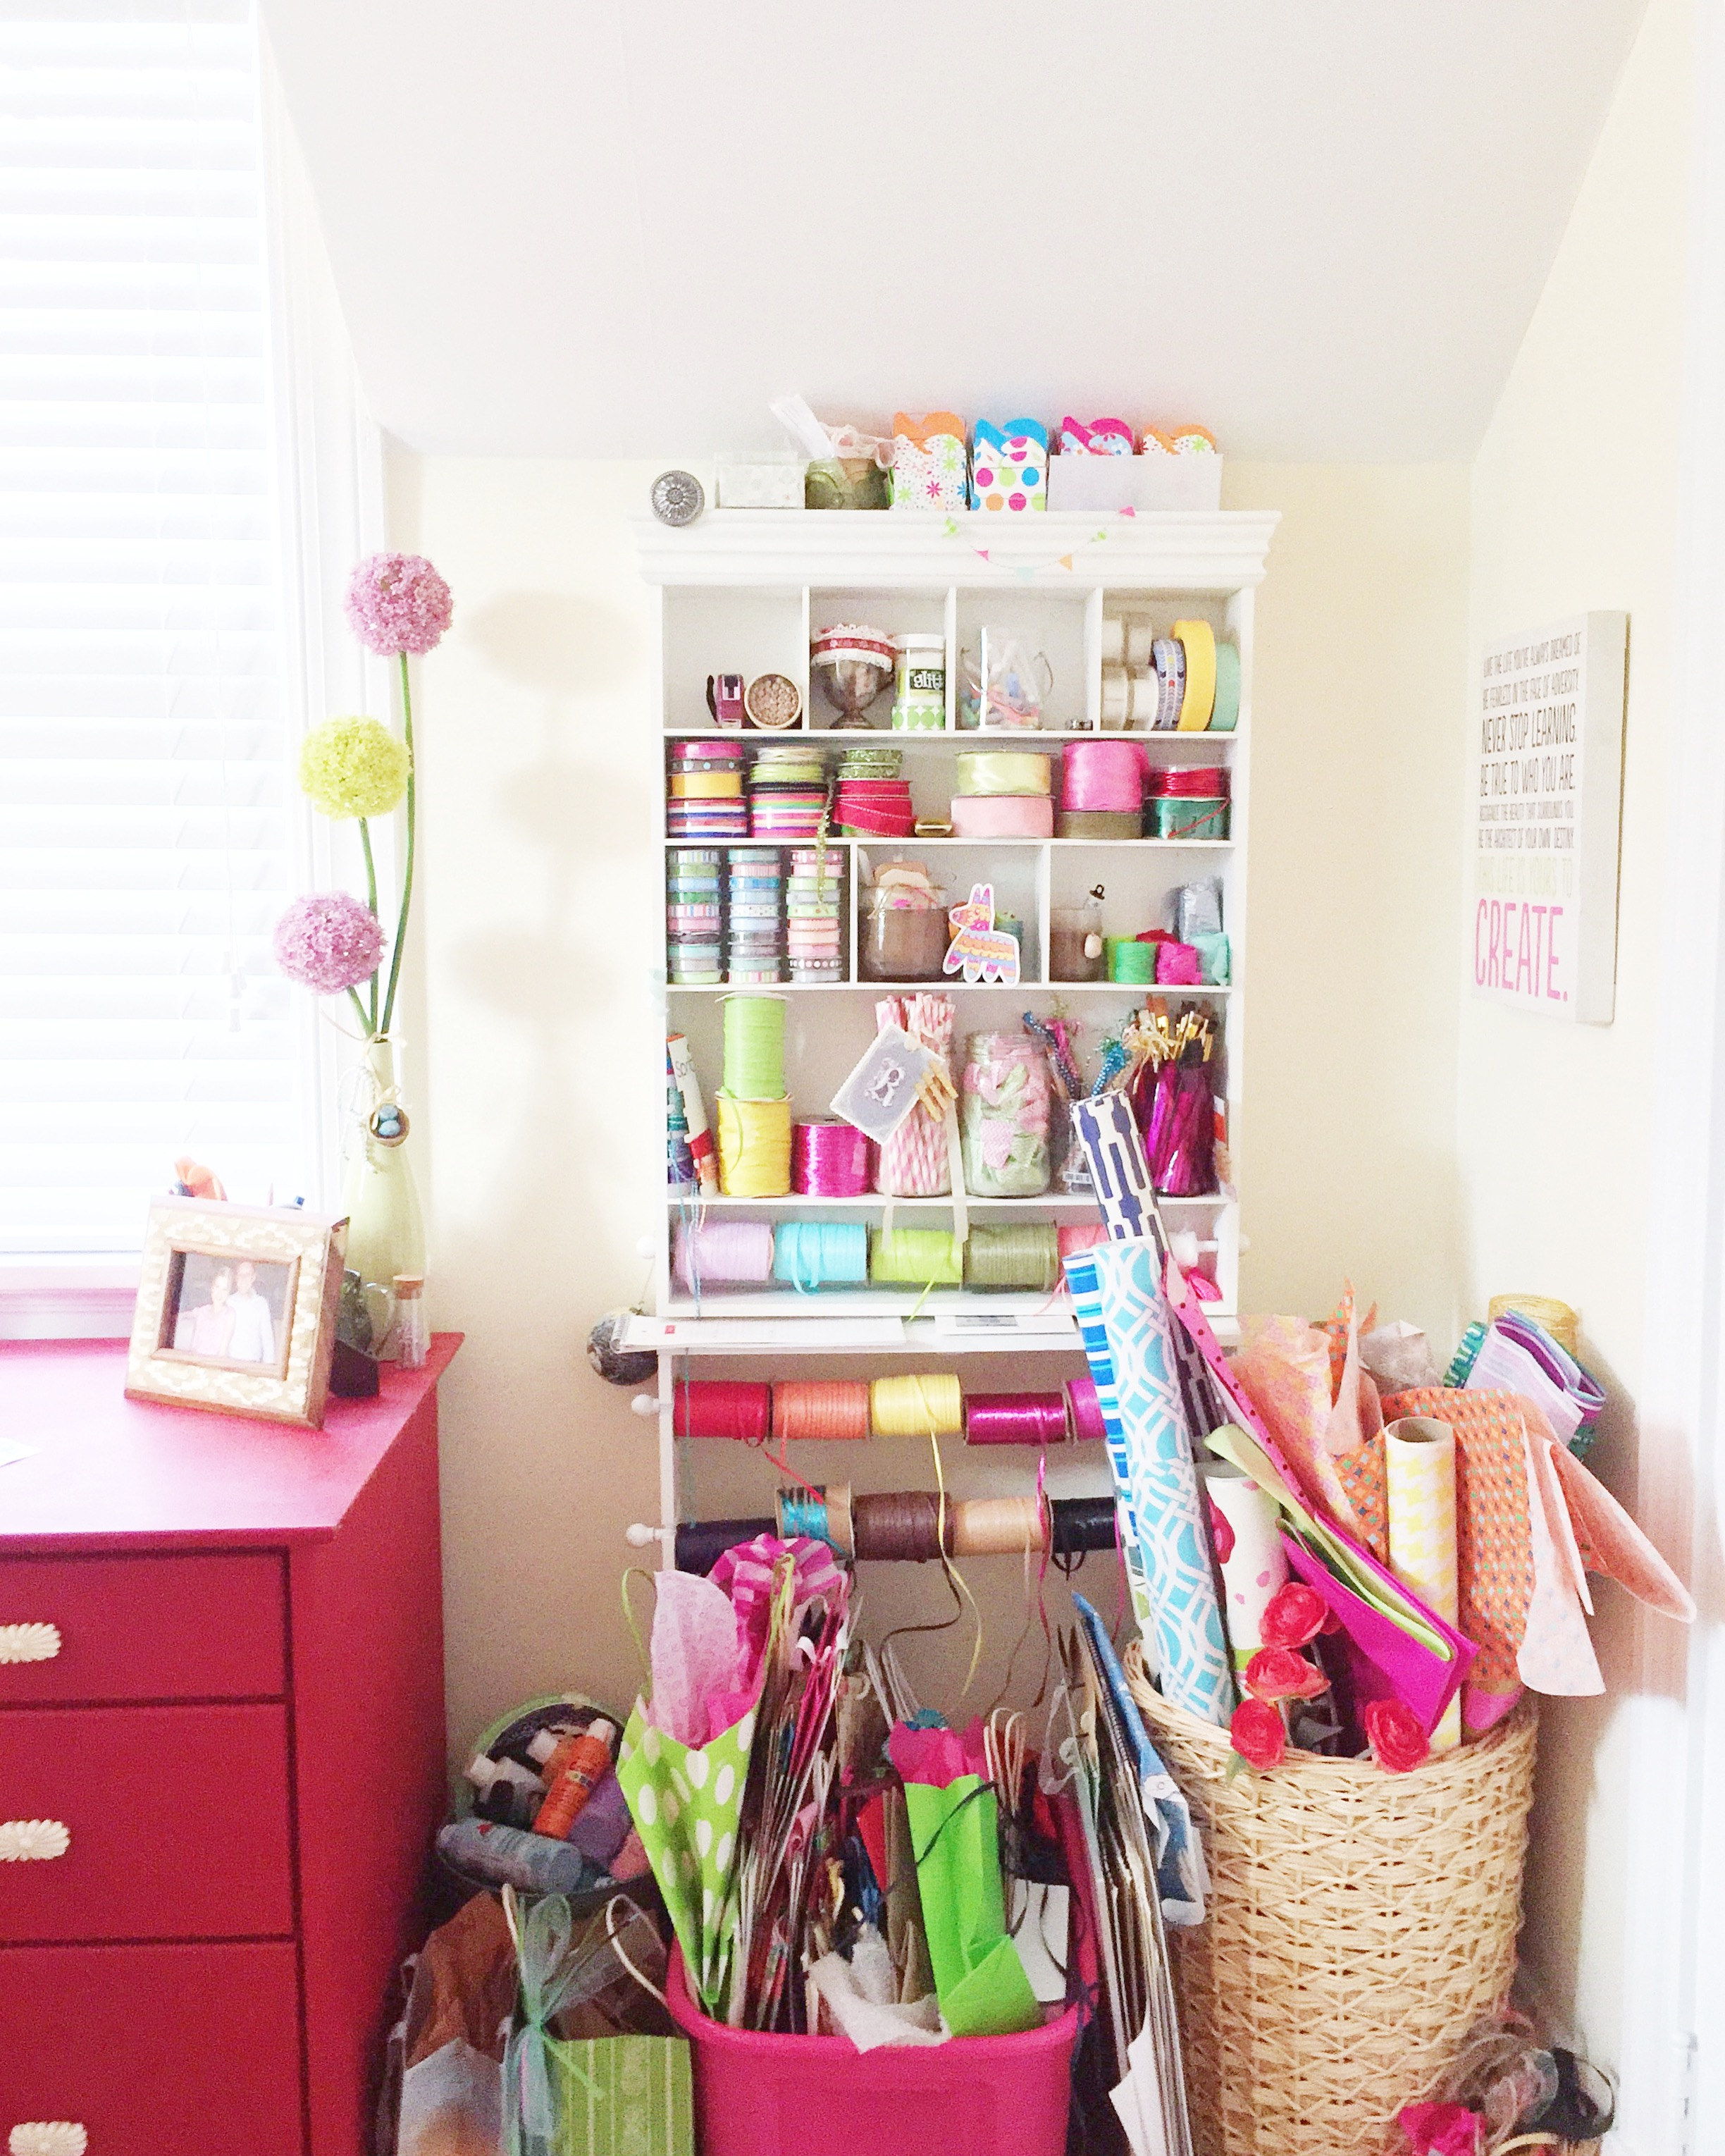 The main craft station including gift wrap, tissue paper, gift bags, ribbon and wraphia, tapes, small boxes and bags.